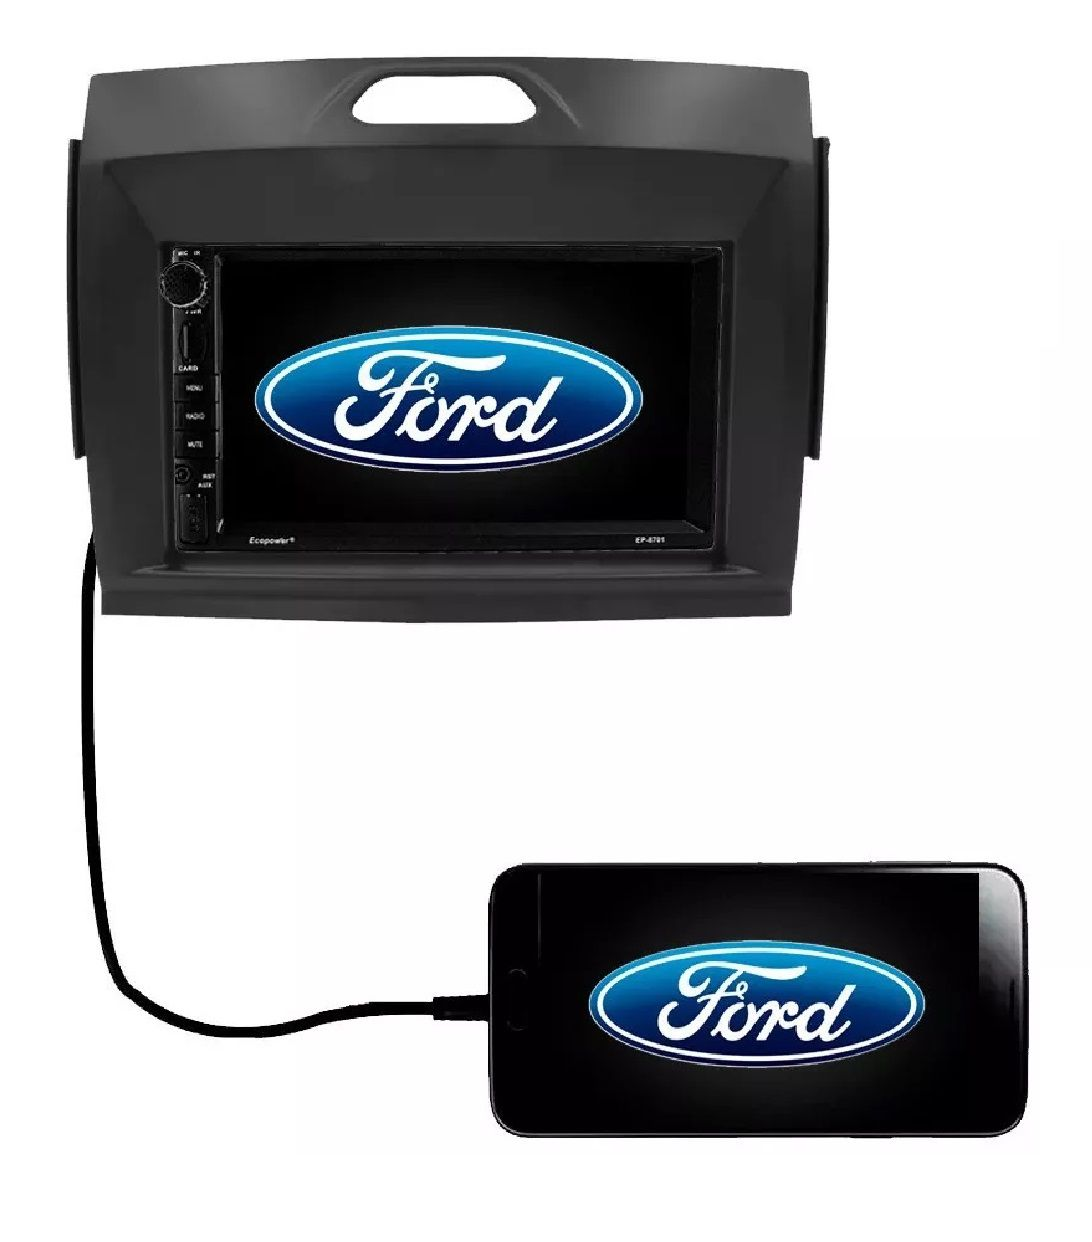 Central Multimídia Dvd Ford Ranger 2016 2017 2018 2019